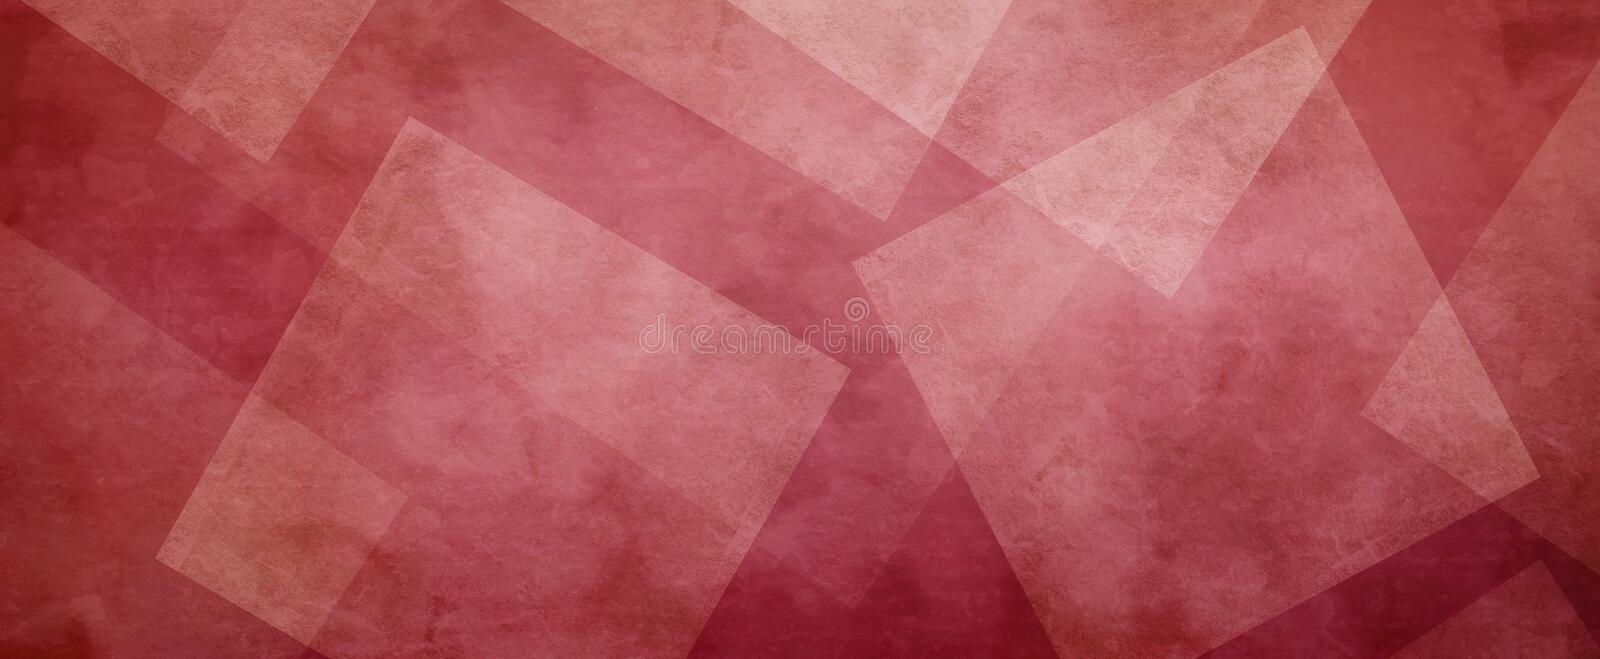 Red background with white layers of textured transparent diamonds or square shapes in geometric design stock images